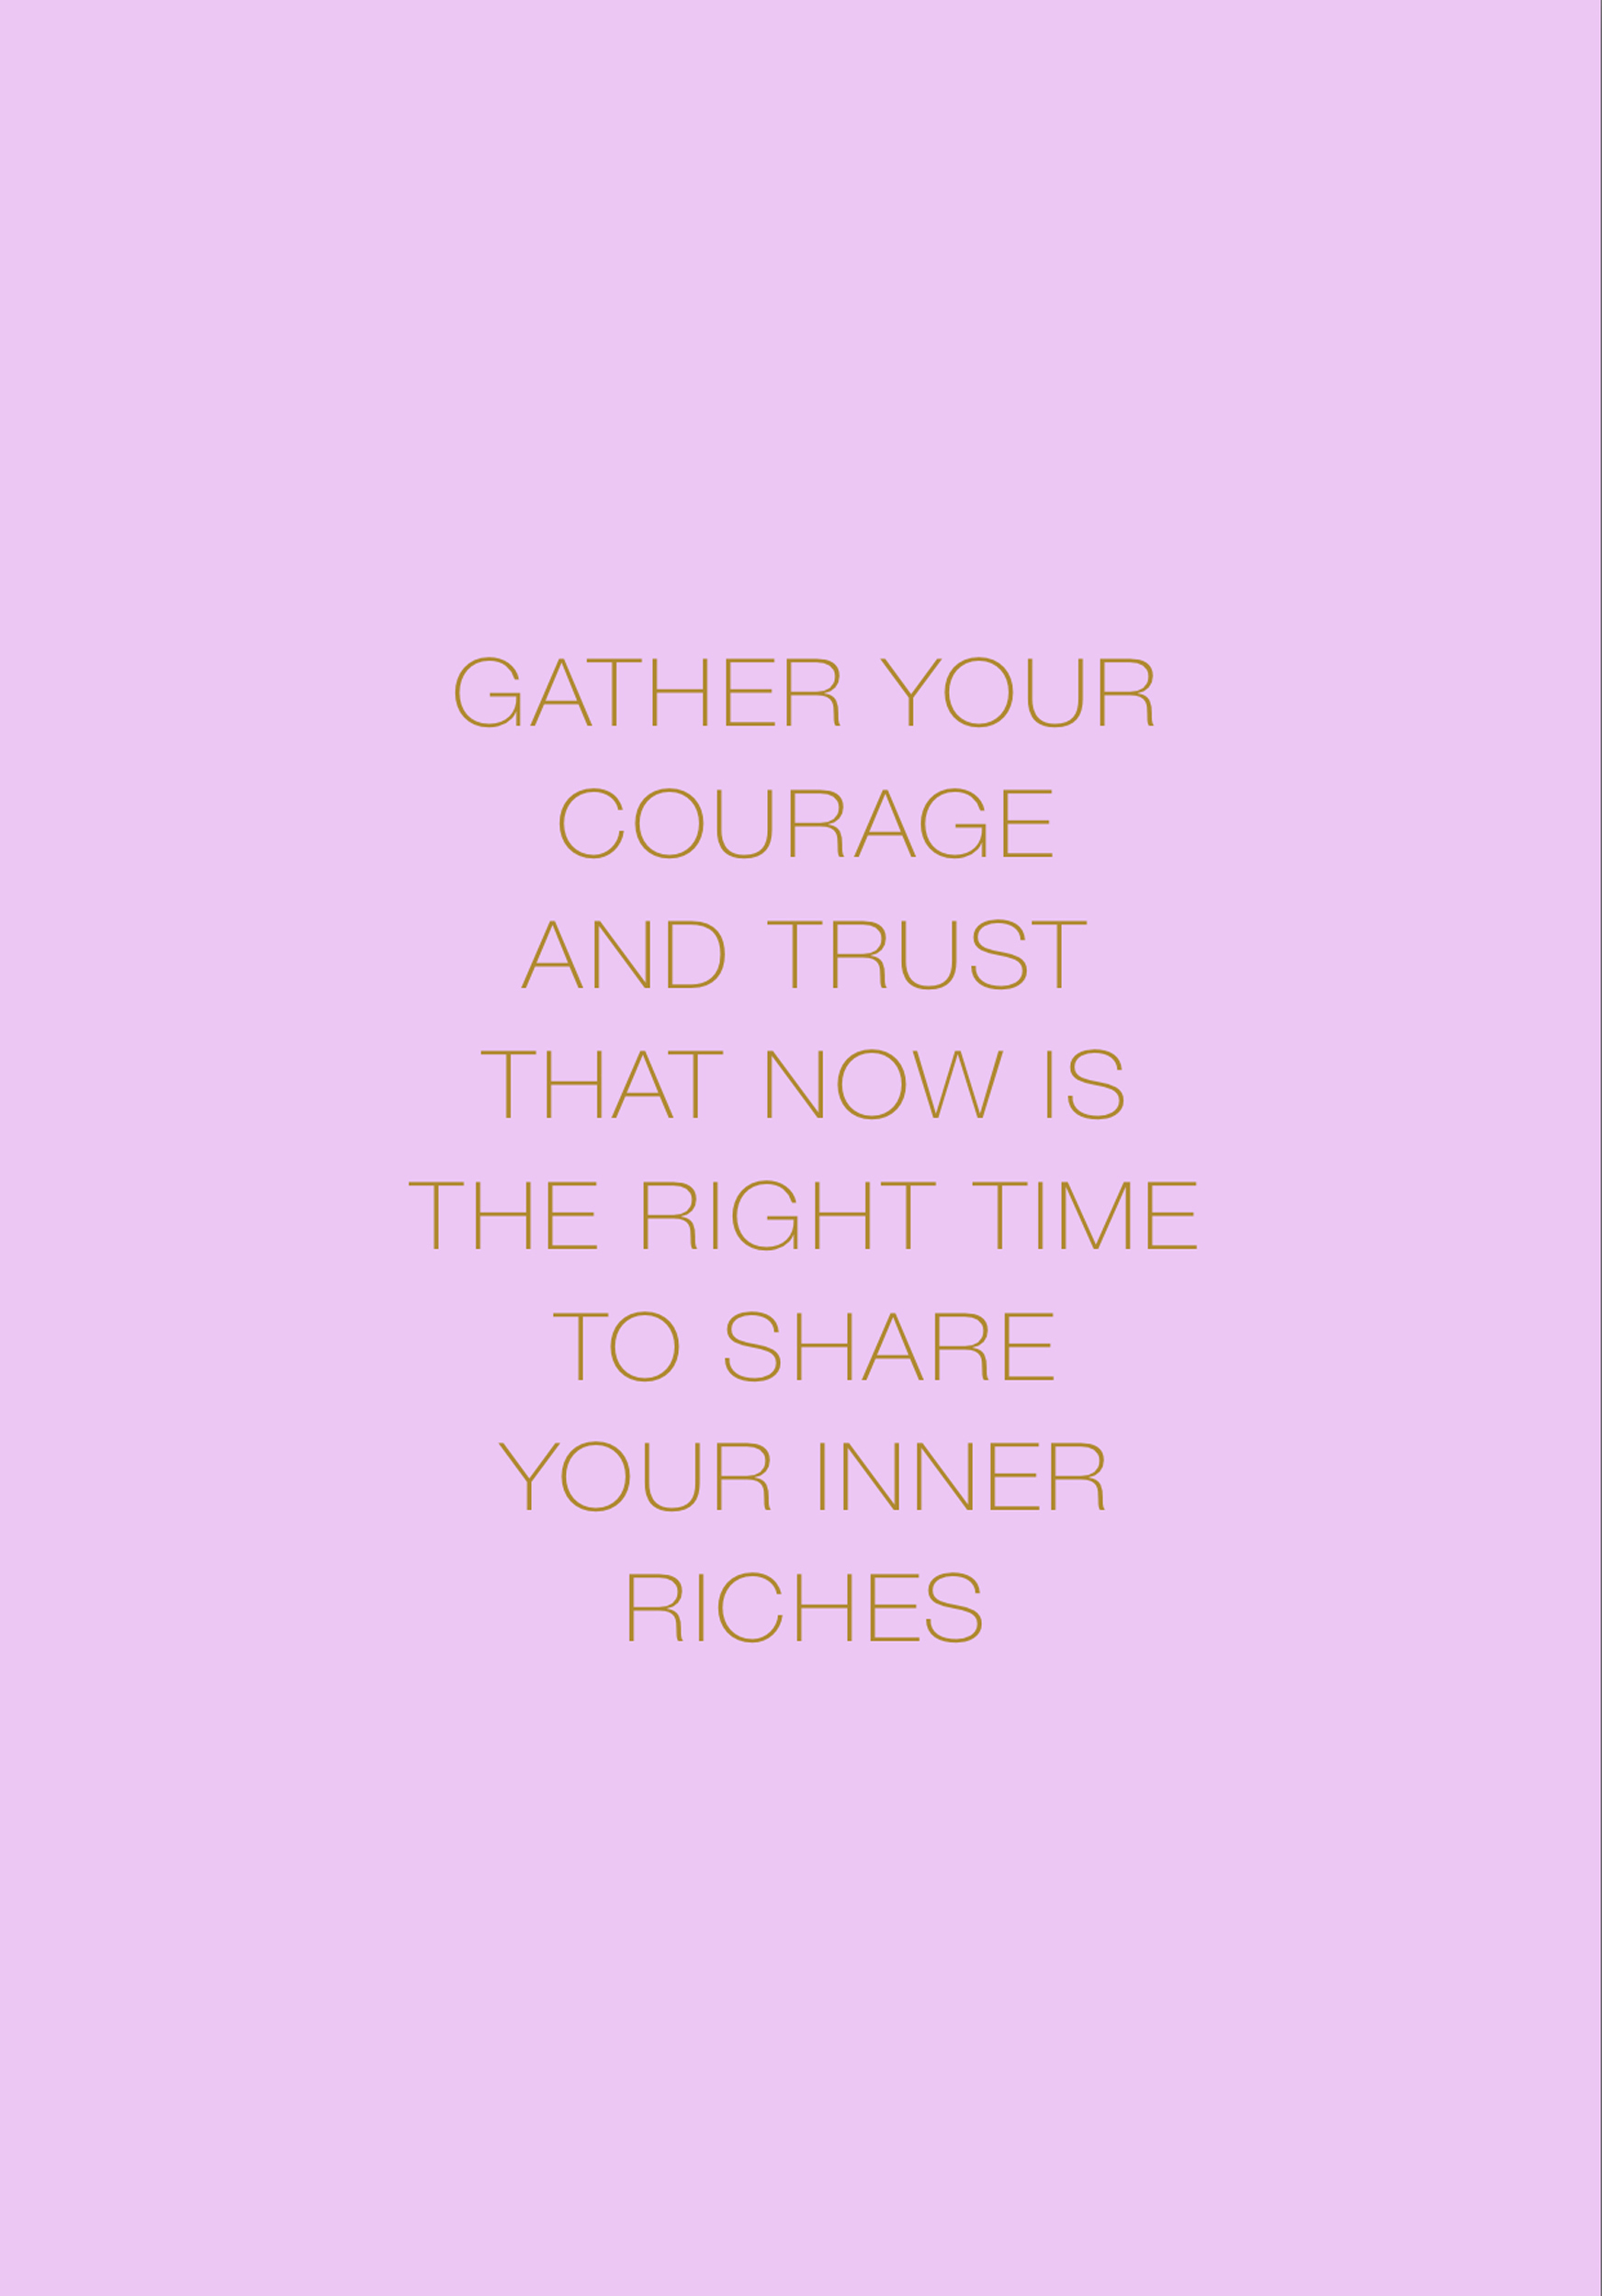 Divine Timing Mantra: Gather Your Courage and Trust that Now is the Right Time to Share Your Inner Riches